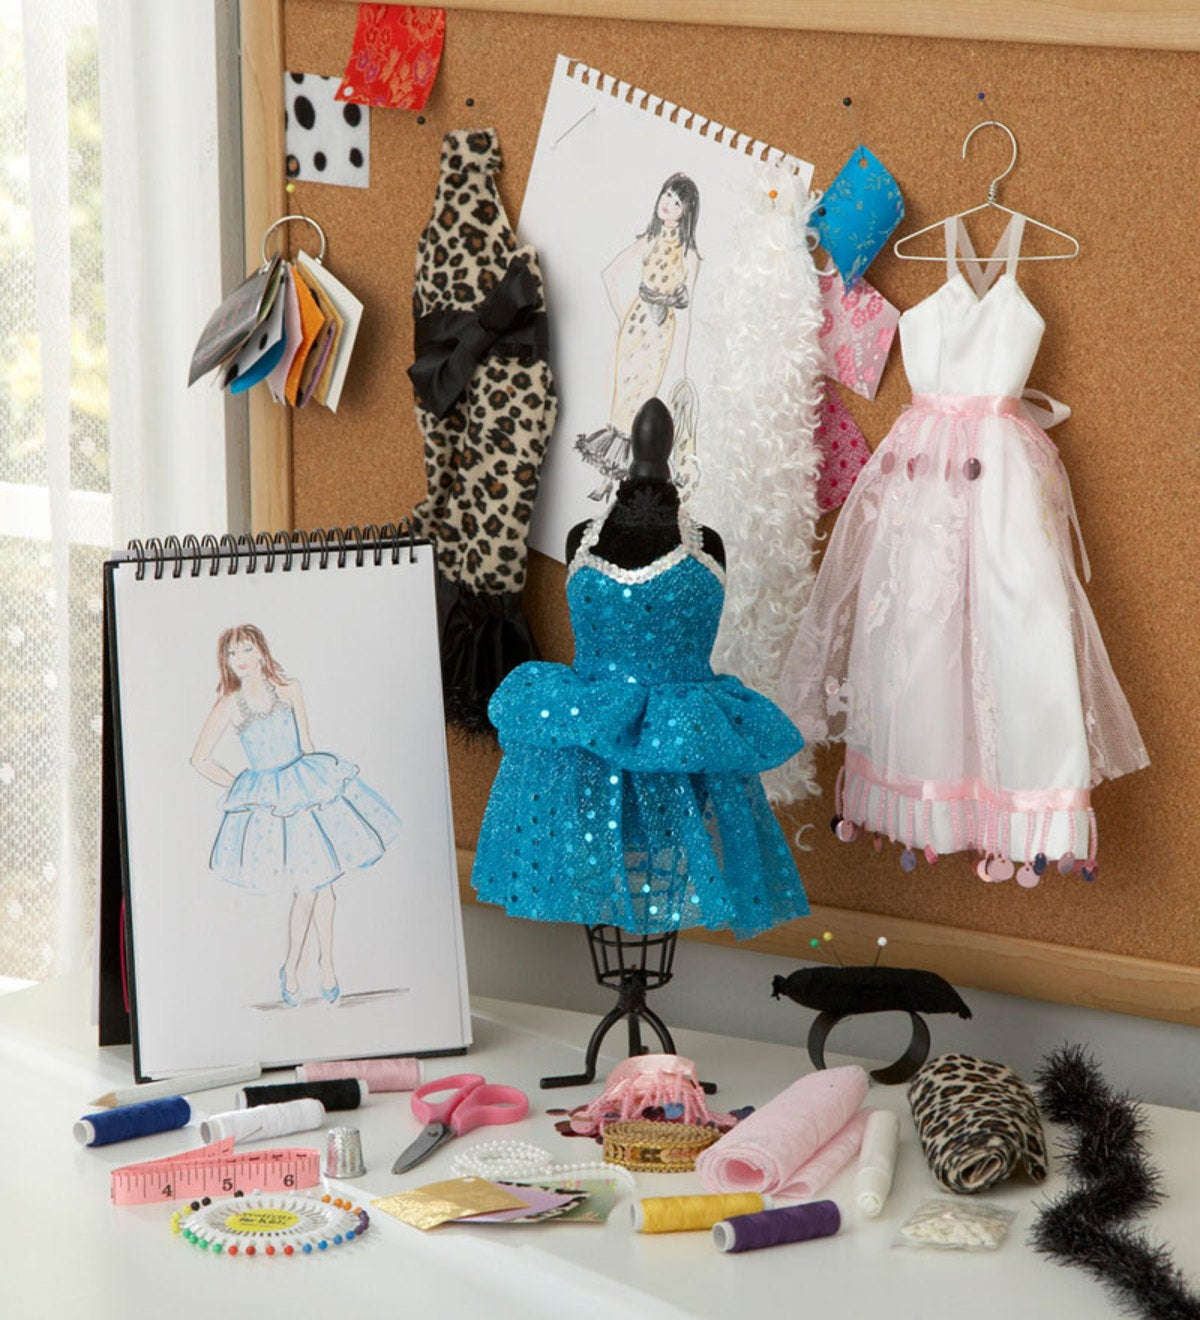 All Inclusive 50 Piece Fashion Design Studio Kit With Mannequin Hearthsong